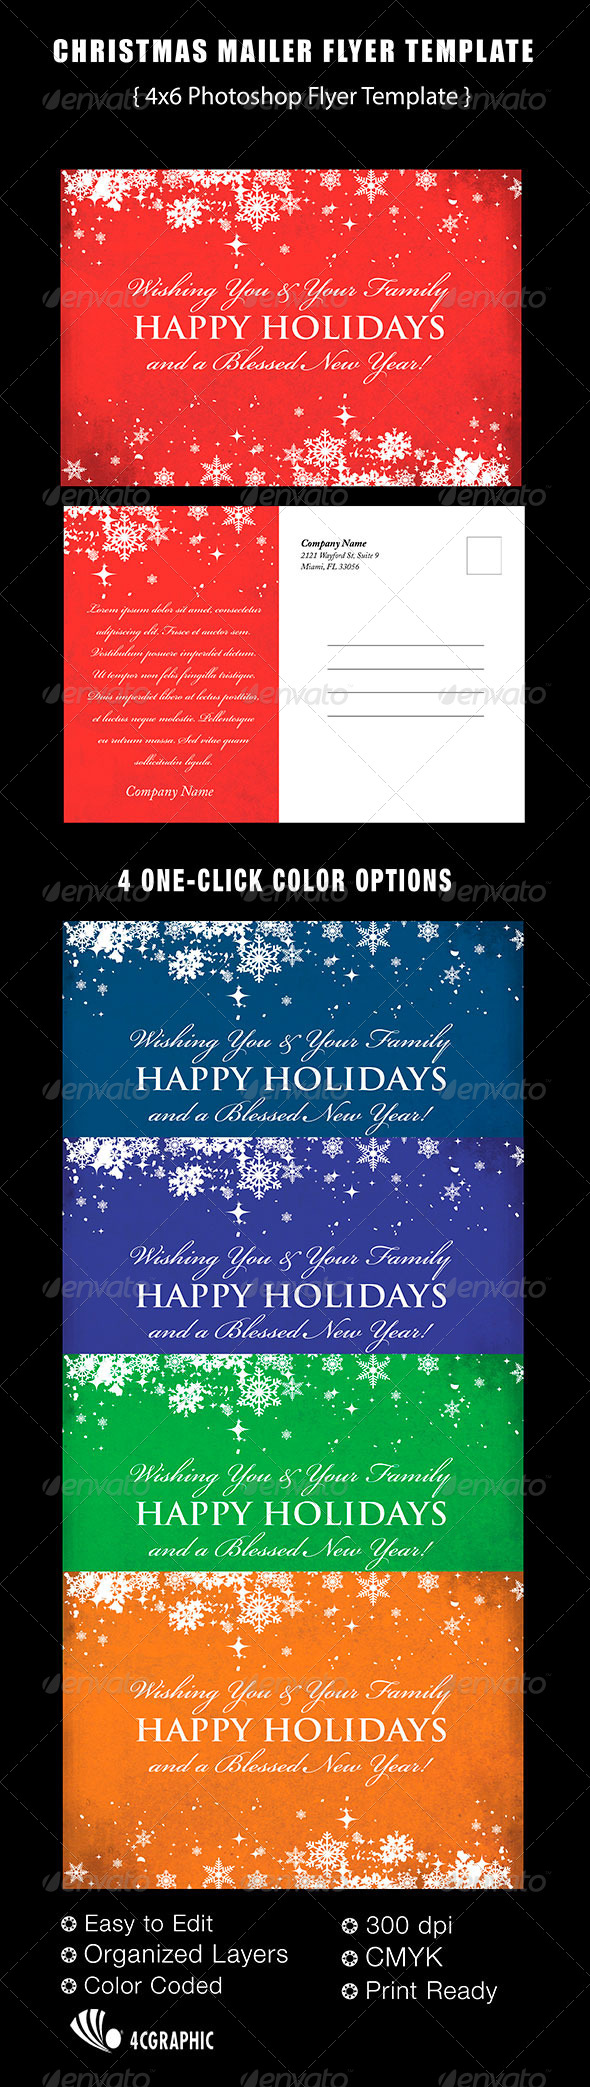 Christmas Mailer Flyer Template - Events Flyers